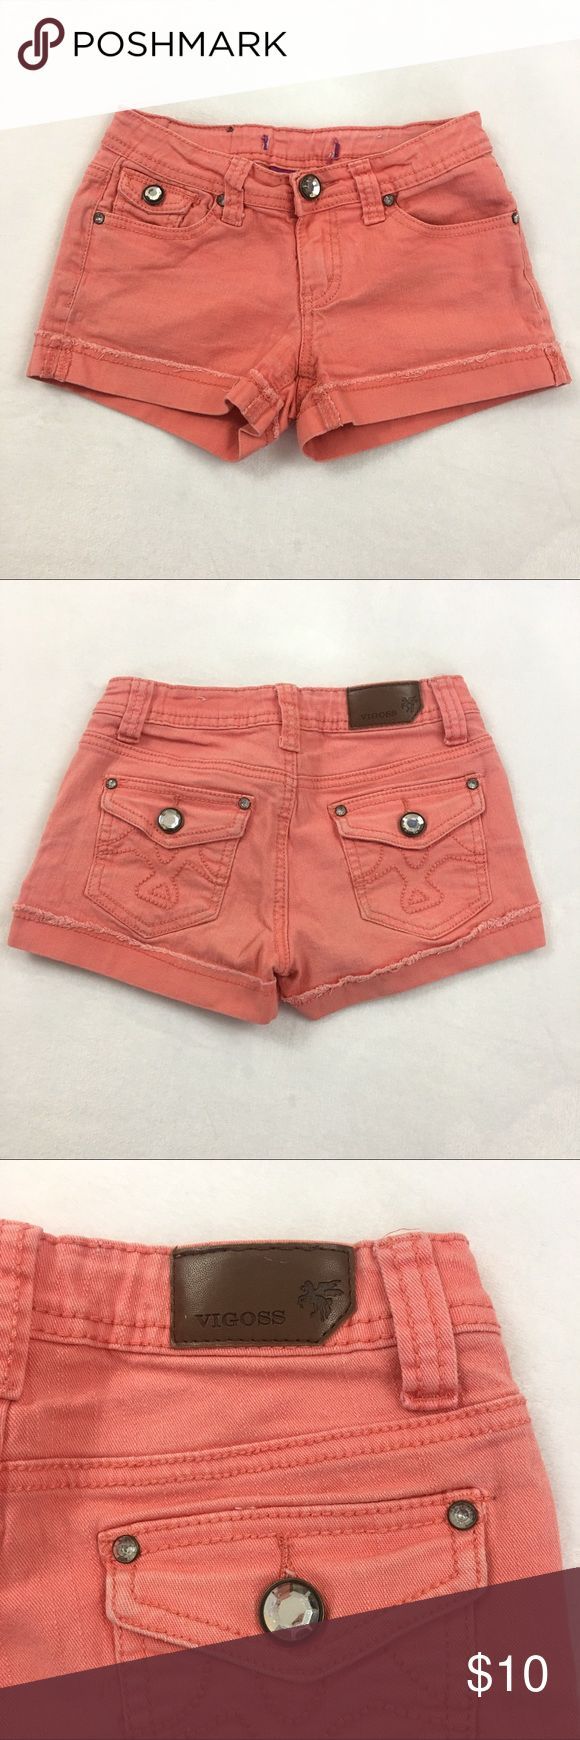 Vigoss Jeans Girls Denim (Peach) Shorts Size 10 (PO001) • Vigoss Jeans Girls Denim (Peach) Shorts Size 10. Embellished & Distressed style. Super cute! Color: Peach. Note one 'Vigoss Jeans' tag removed. See Photos for details. Vigoss Bottoms Shorts